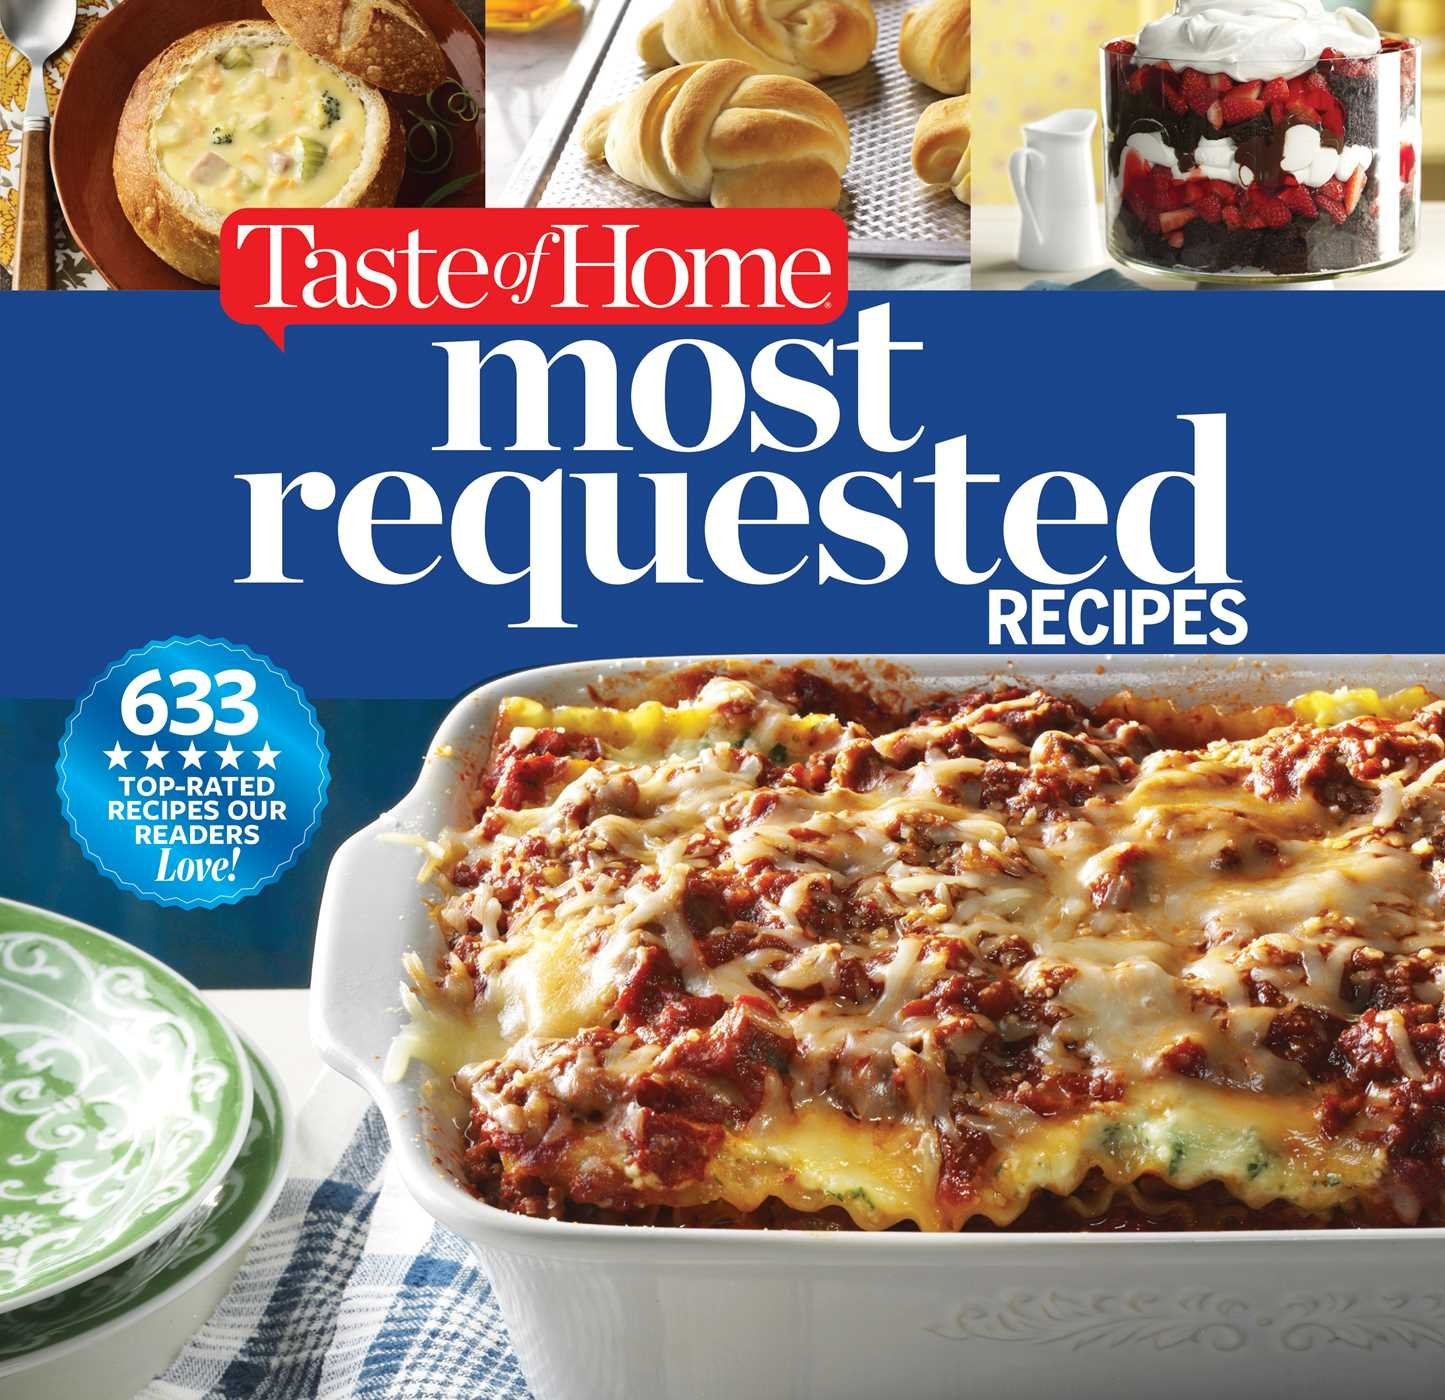 Image OfTaste Of Home Most Requested Recipes: 633 Top-Rated Recipes Our Readers Love!